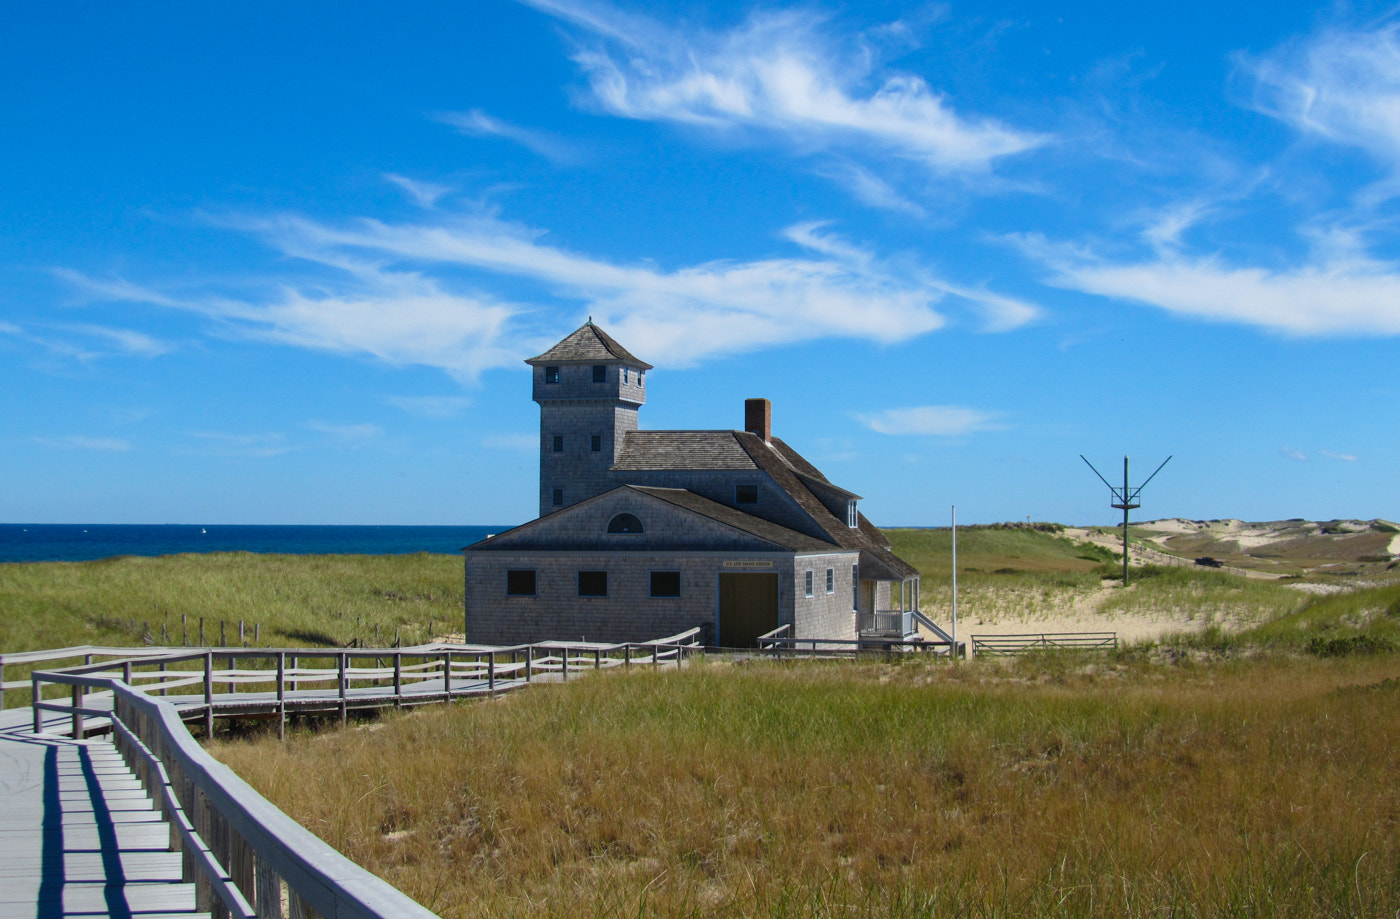 Photograph U.S. Live Saving Station in Cape Cod by Hans Fischer on 500px